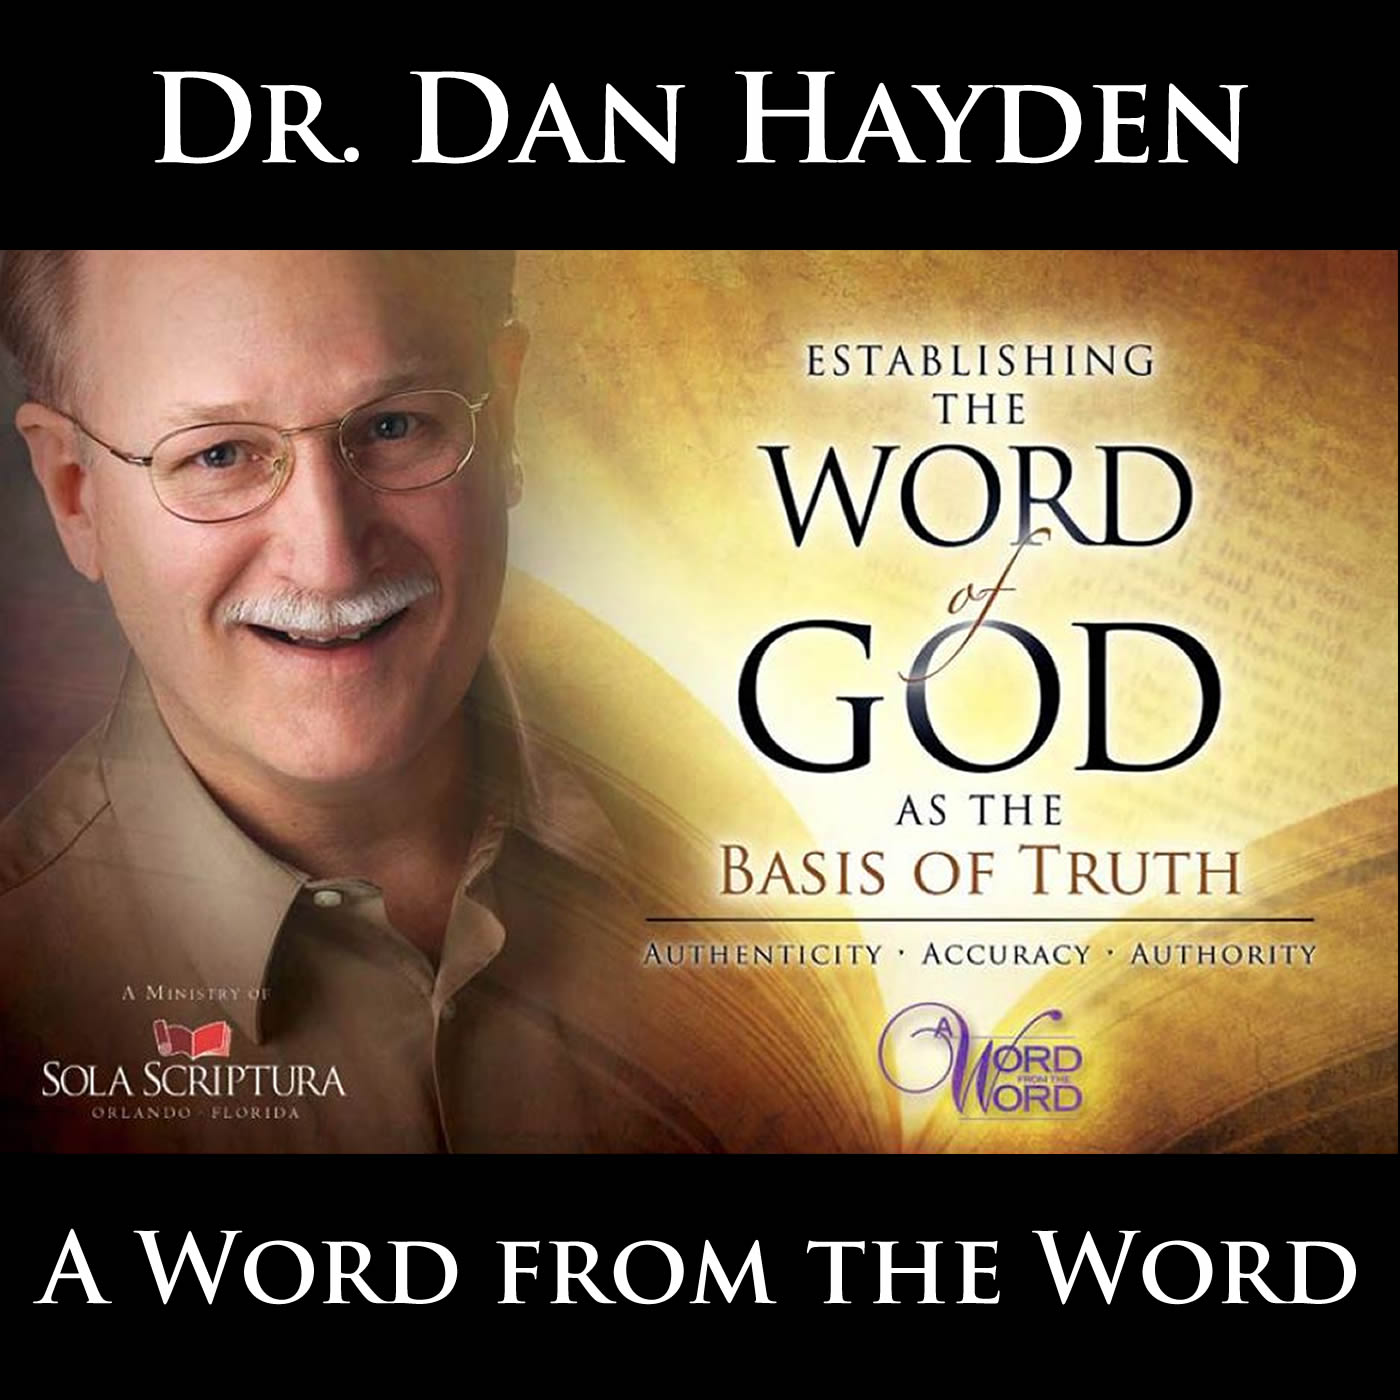 Dr. Dan Hayden - A Word from the Word